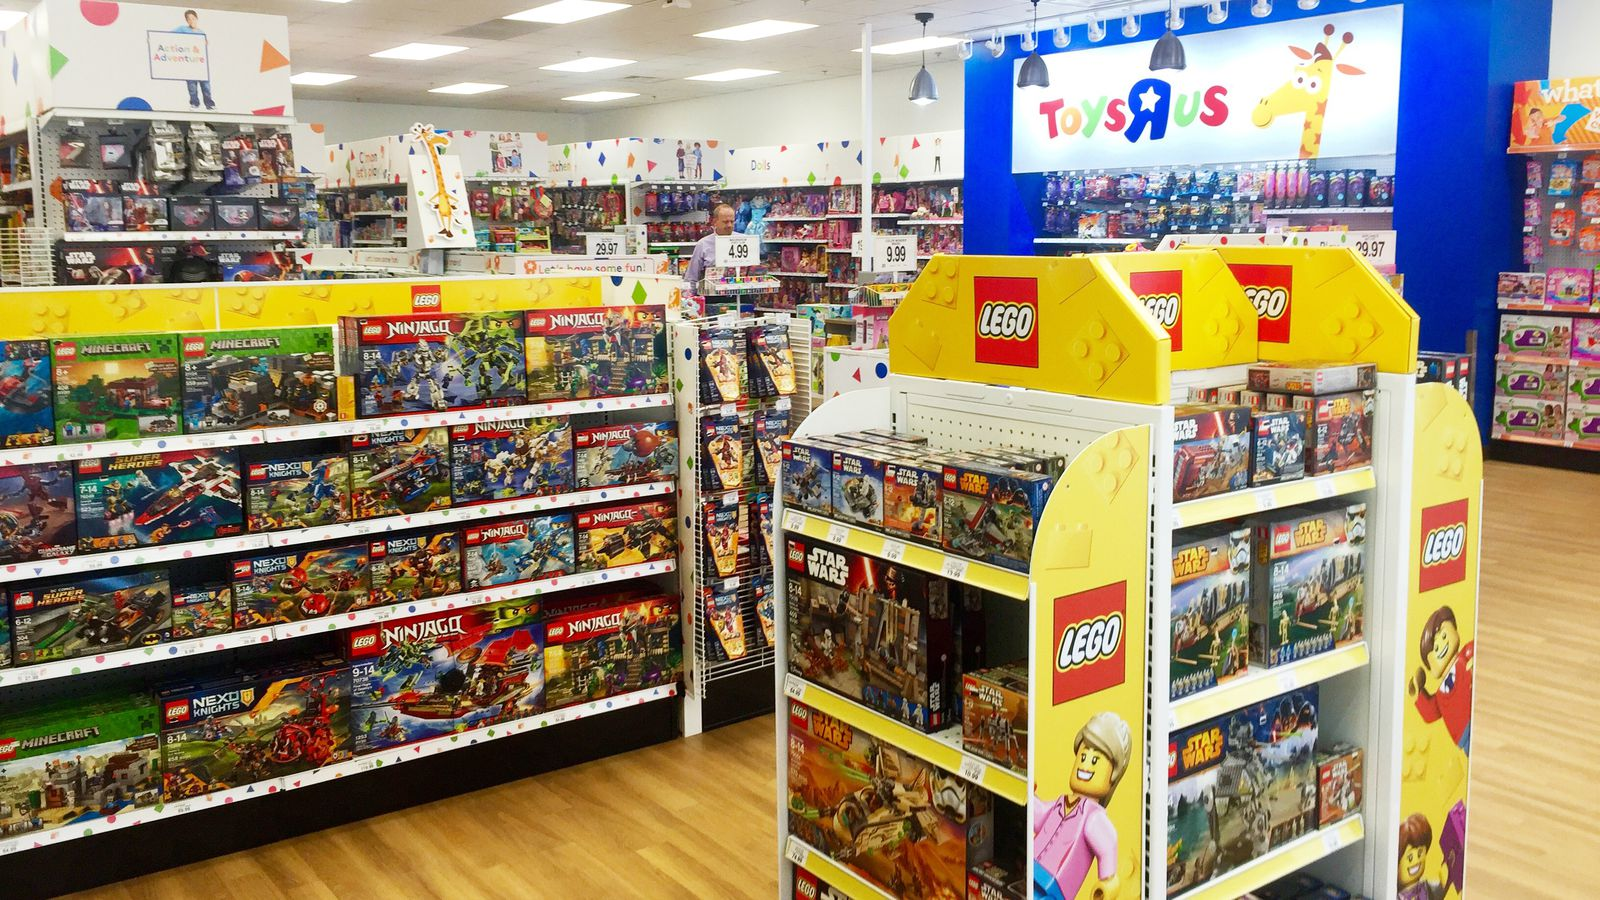 Toys R Us Küchengeräte Toys 'r' Us Is Opening An Outlet Store In Baldwin Hills